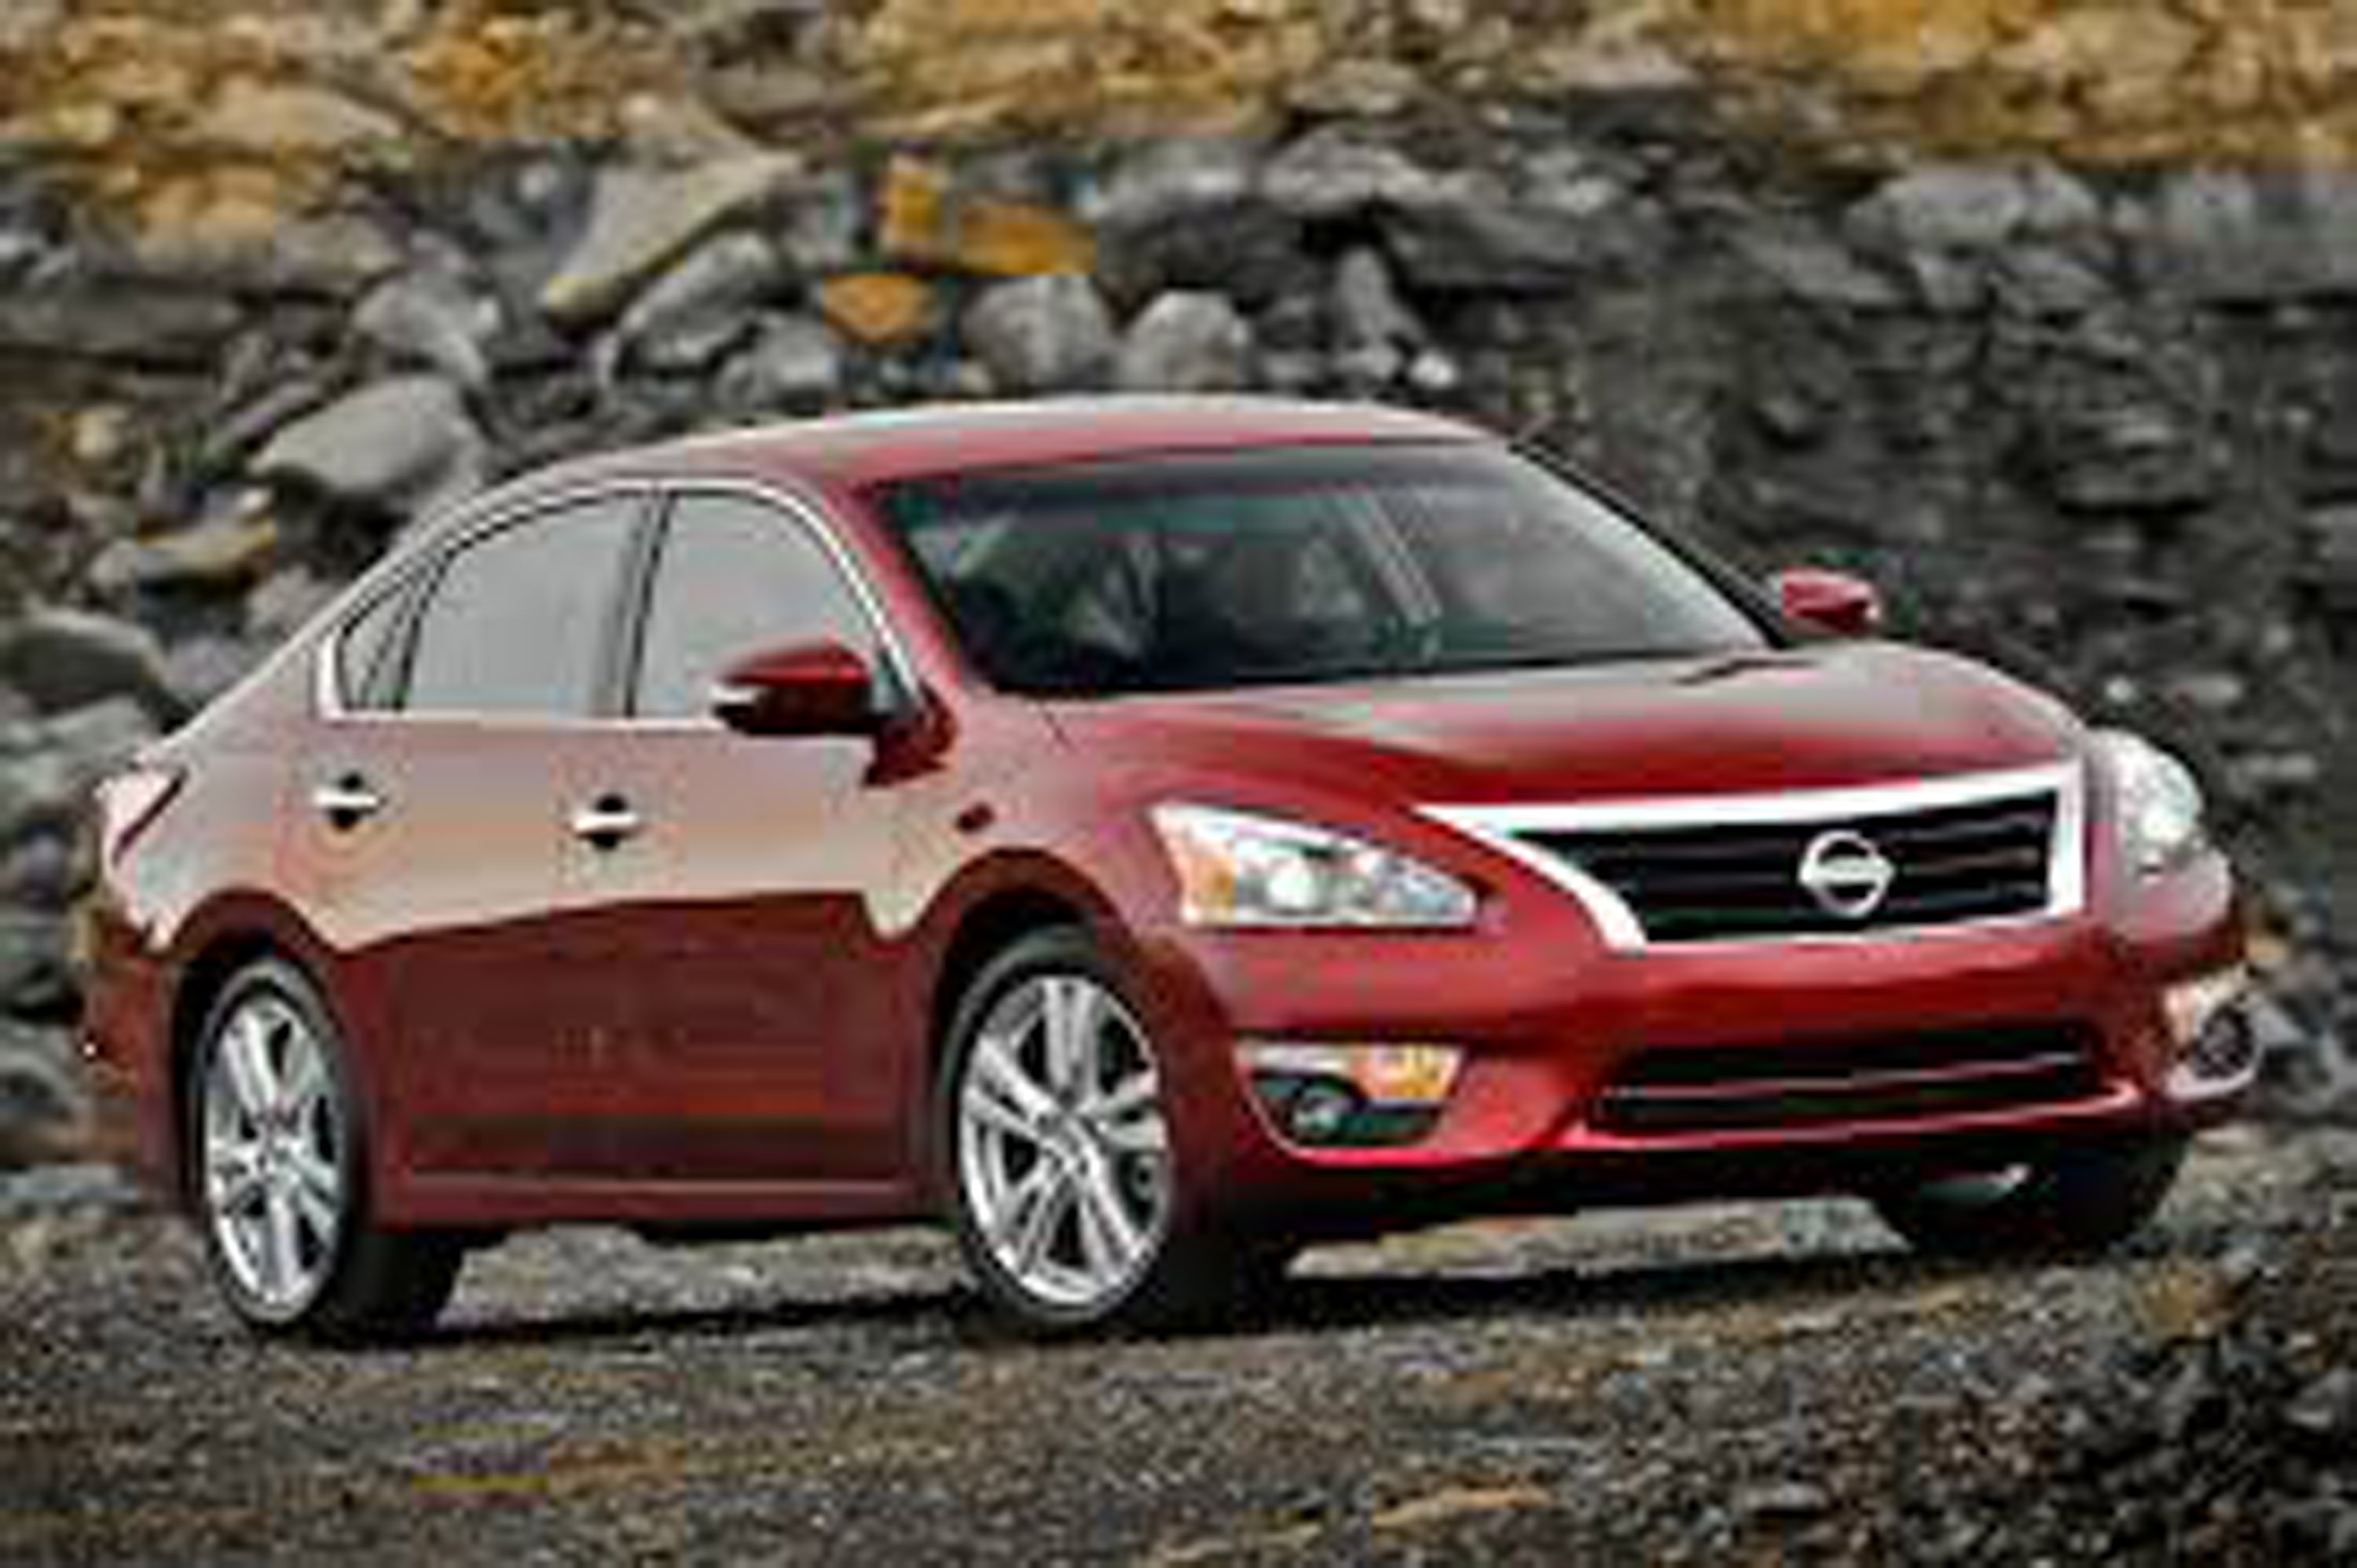 coupe review price redesign altima hybrid engine interior color nissan exterior